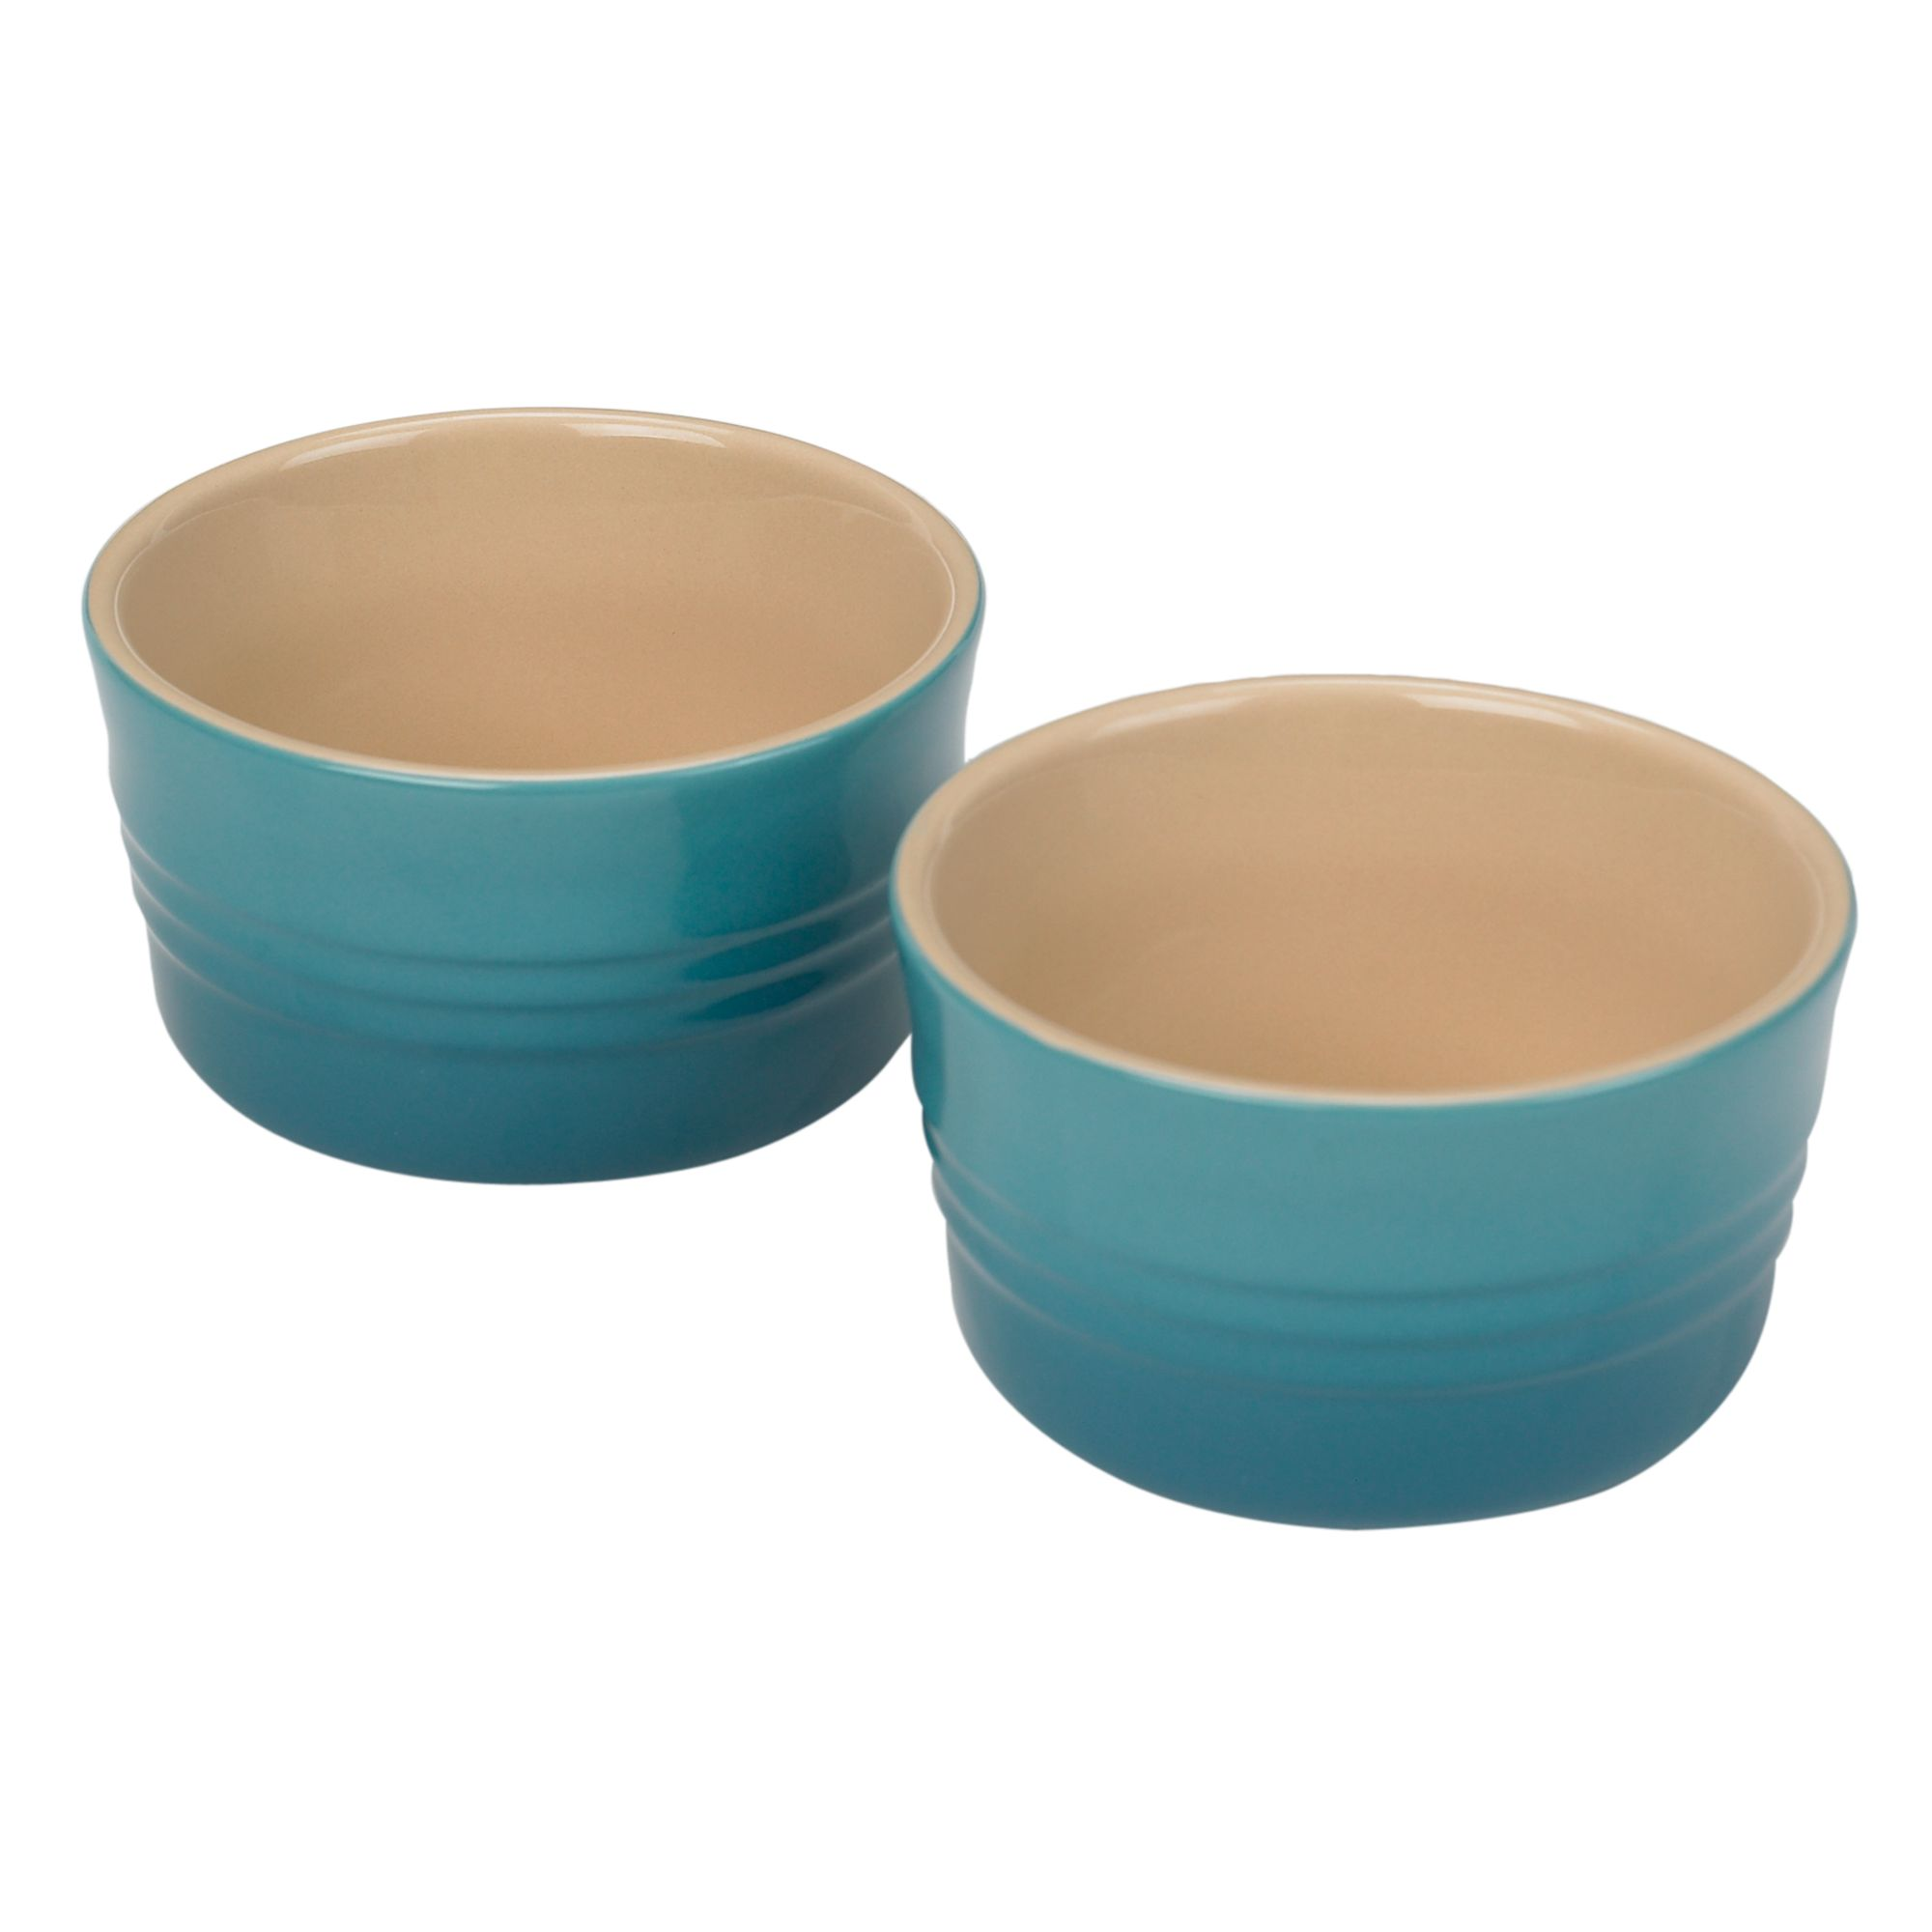 Stoneware ramekins (set of 2)